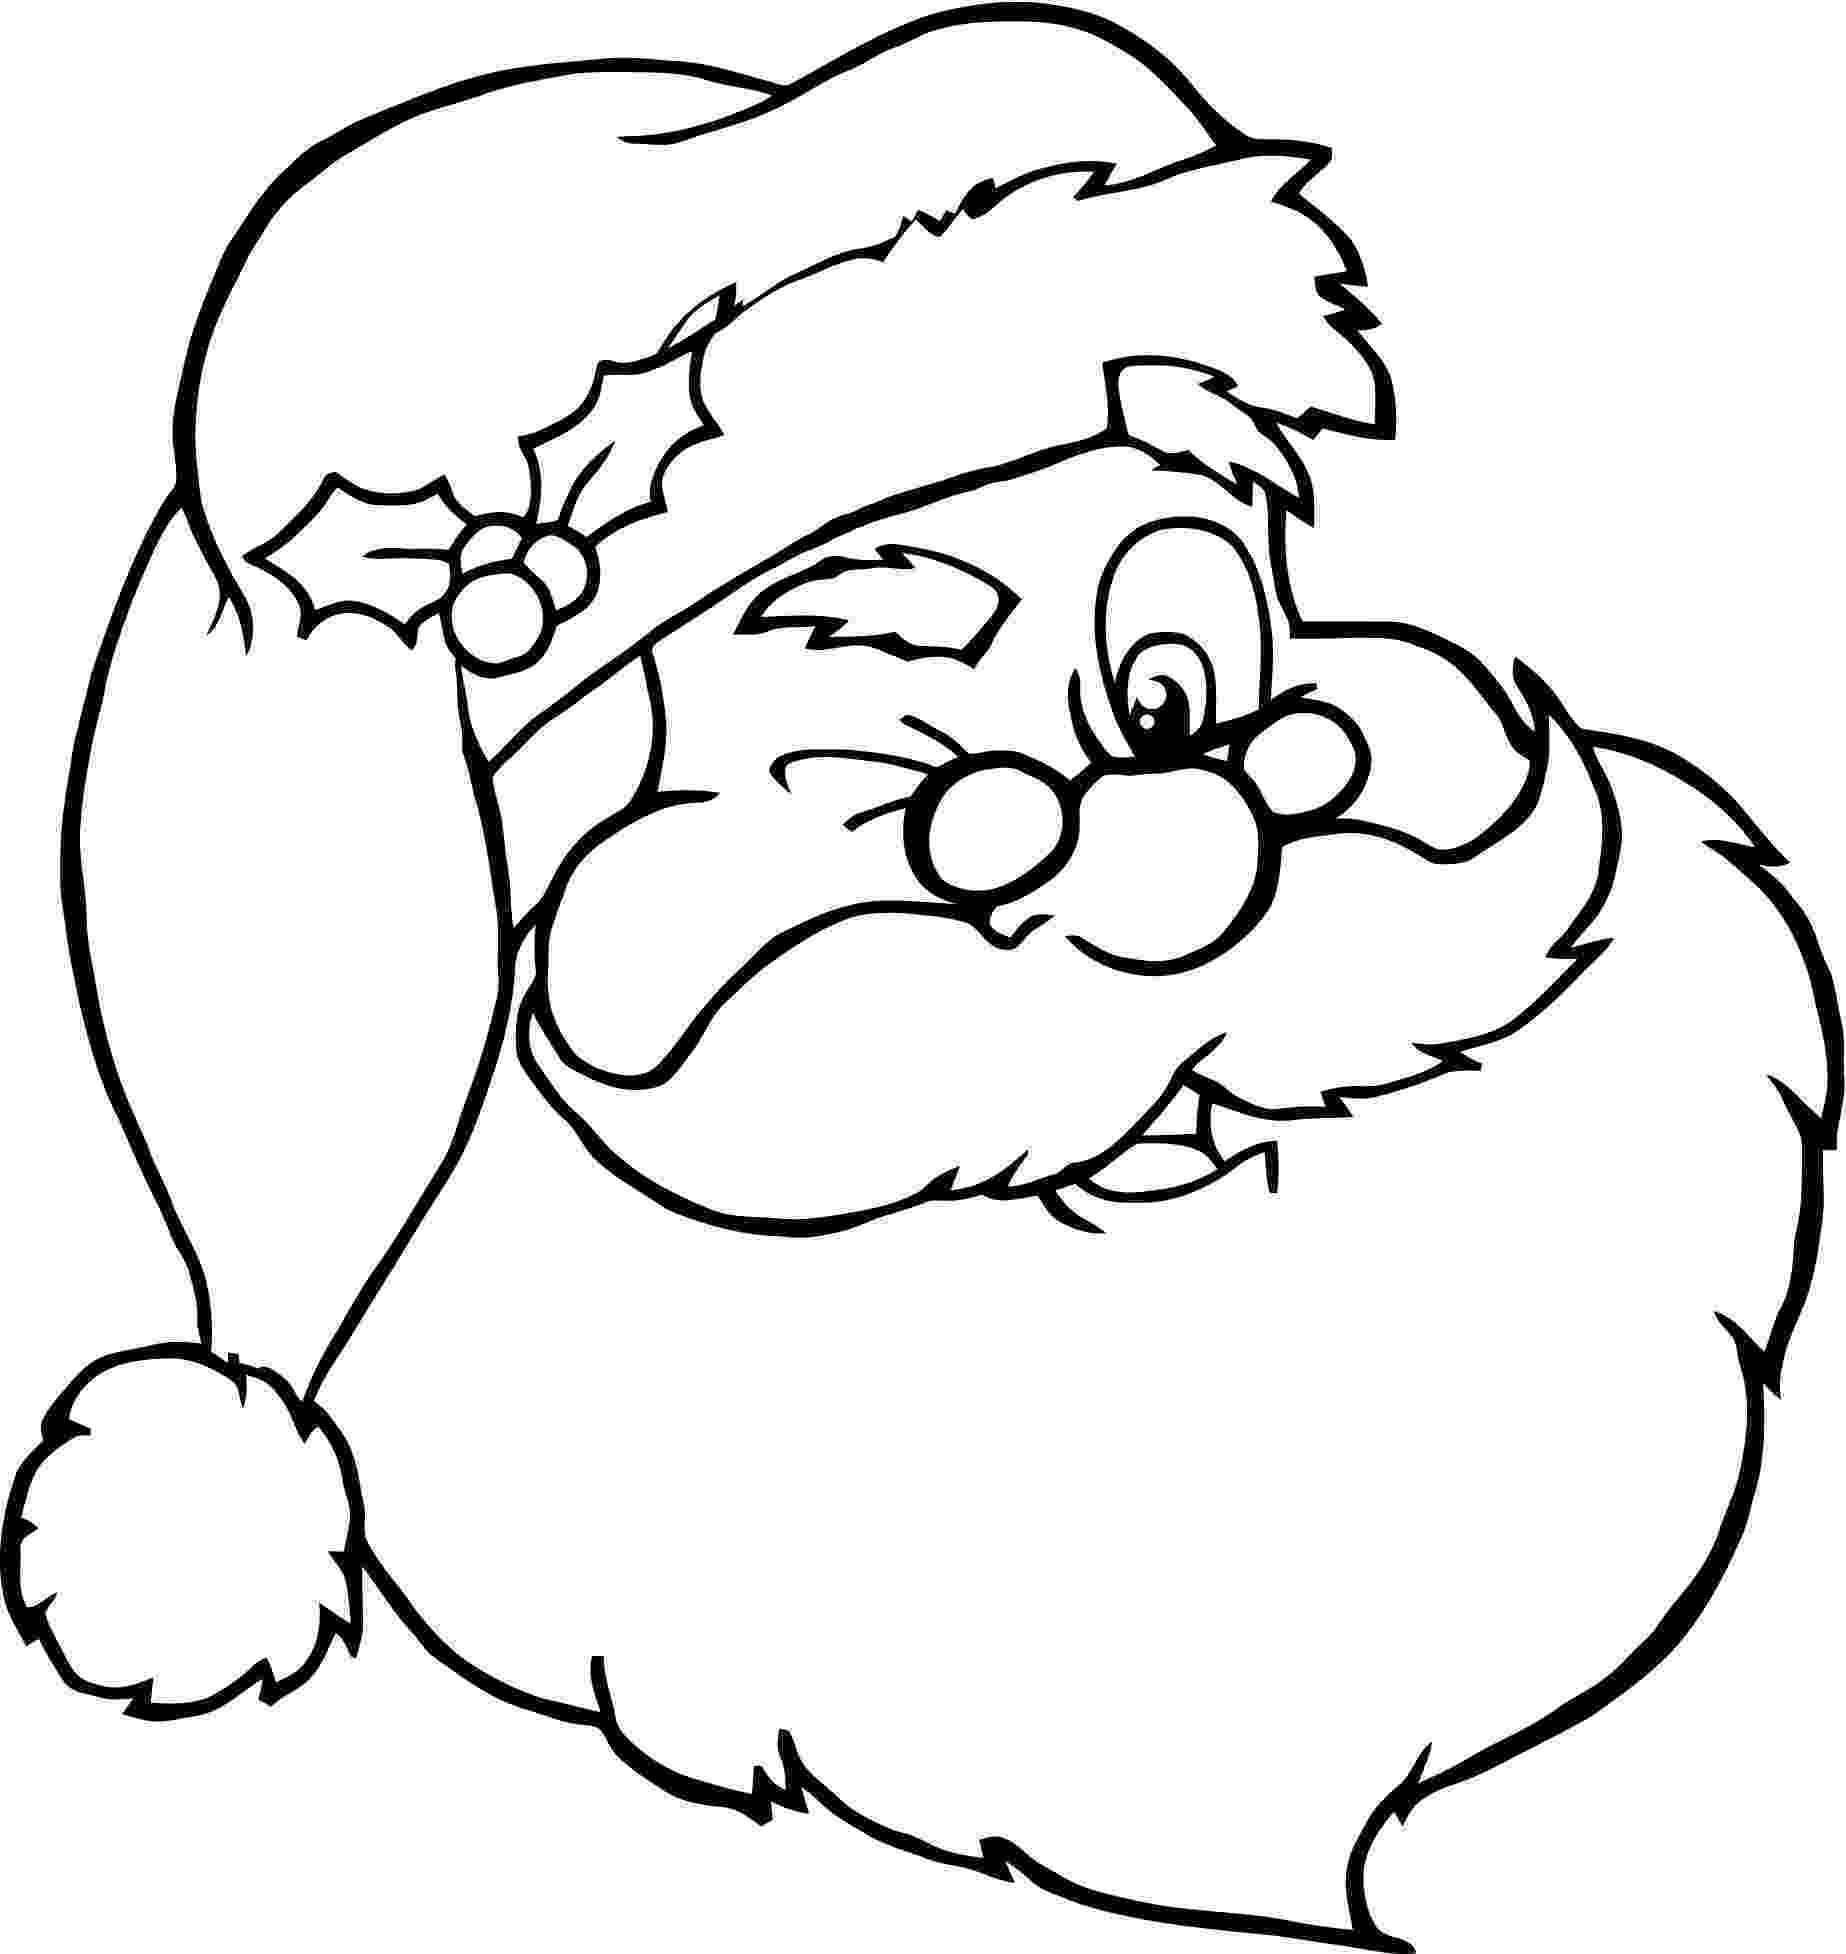 santa claus images for colouring coloring pages santa claus coloring pages free and printable for images claus santa colouring